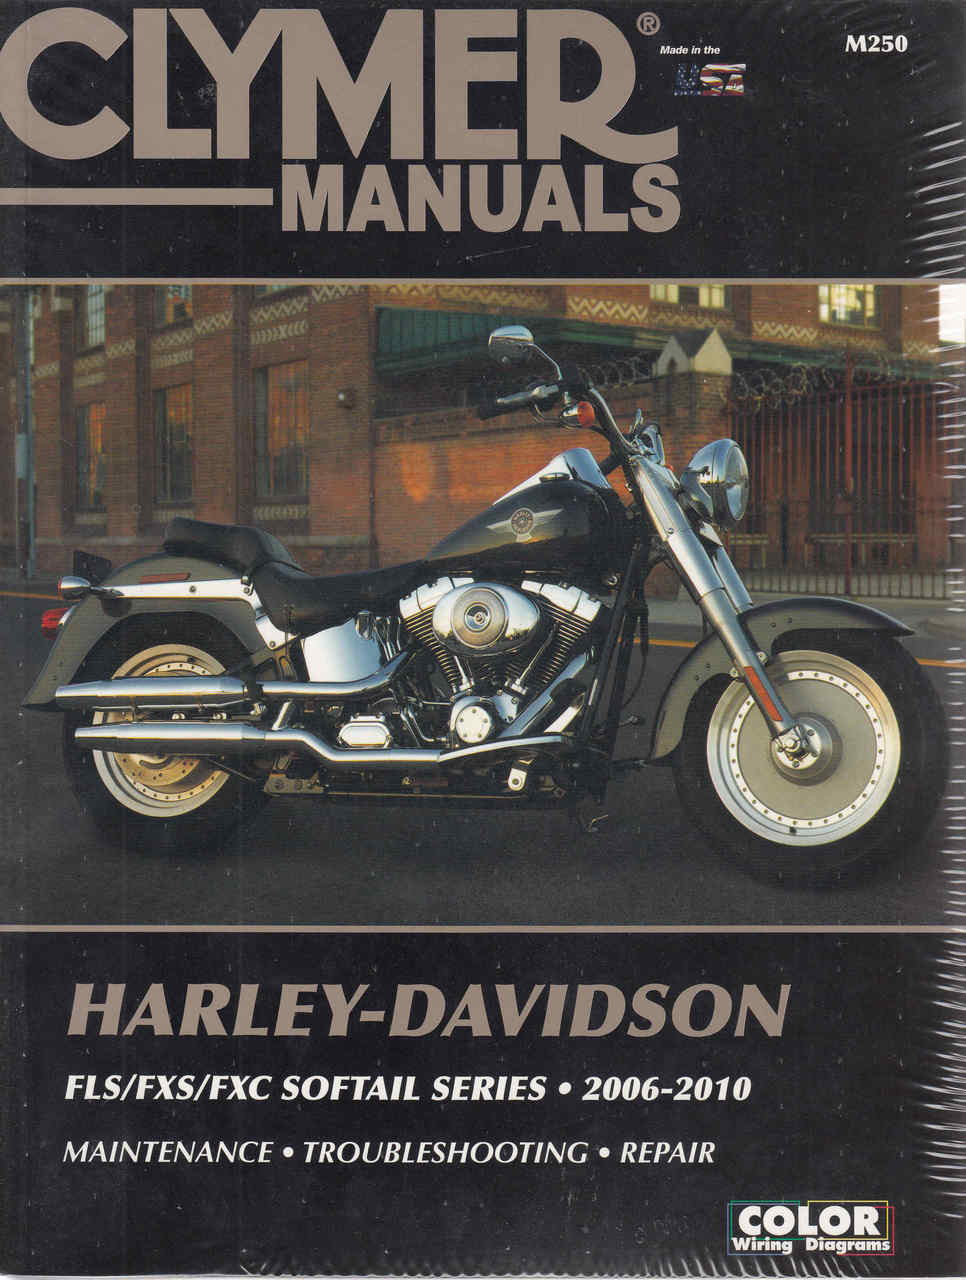 harley davidson fls fxs fxc softail series 2006 2010 workshop manual  [ 966 x 1280 Pixel ]